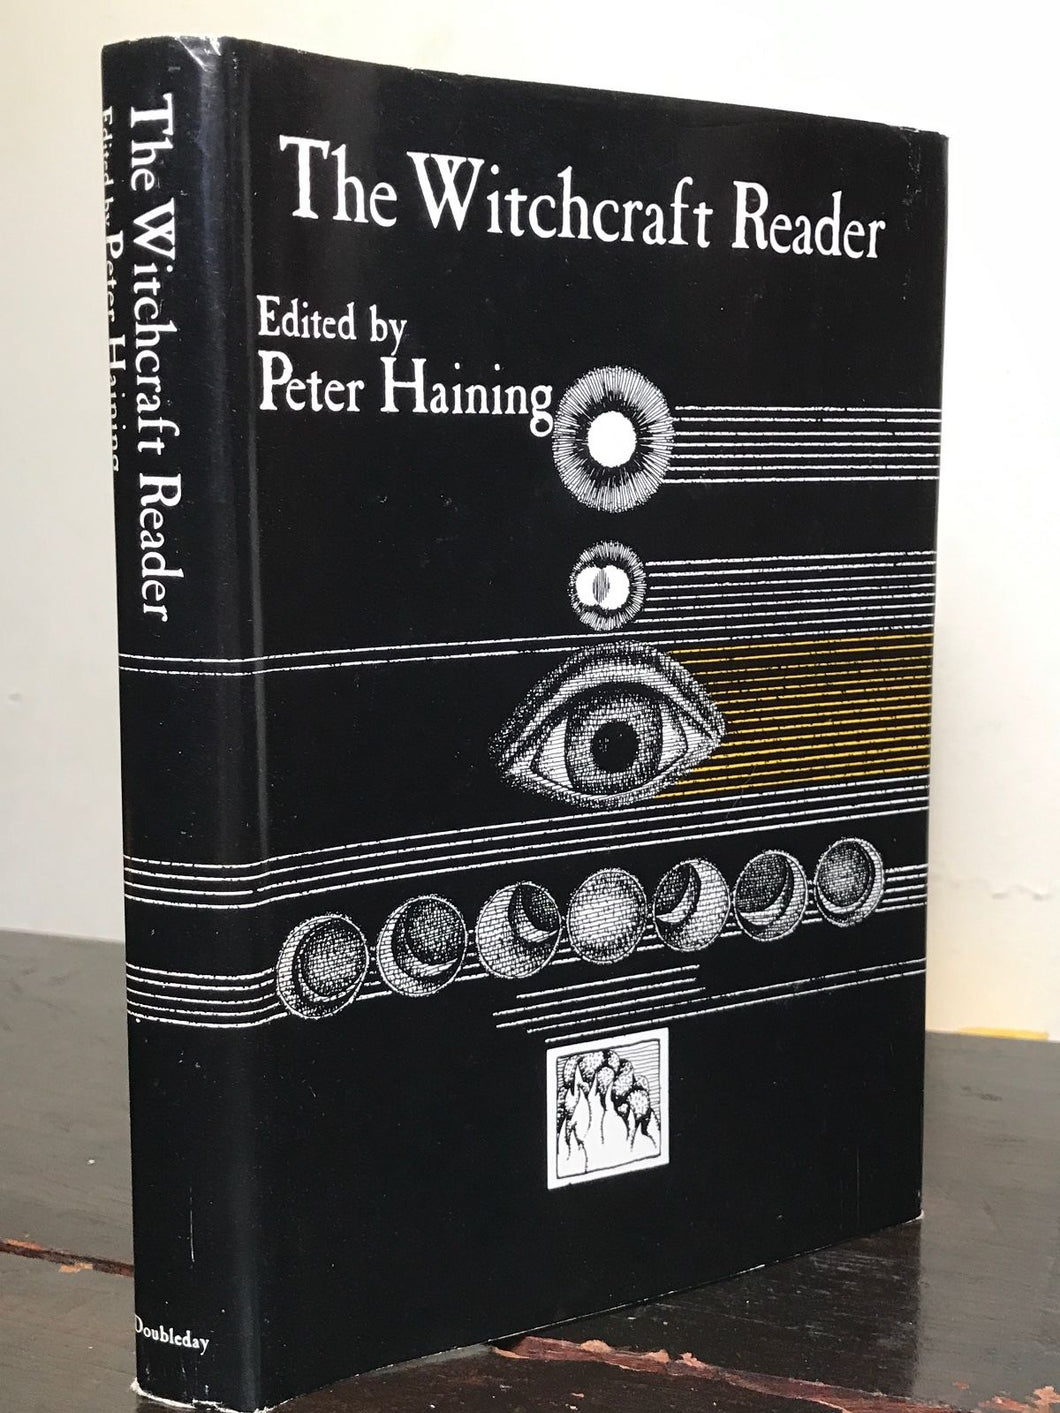 REVIEW COPY - THE WITCHCRAFT READER Peter Haining 1st / 1st 1970 HC/D